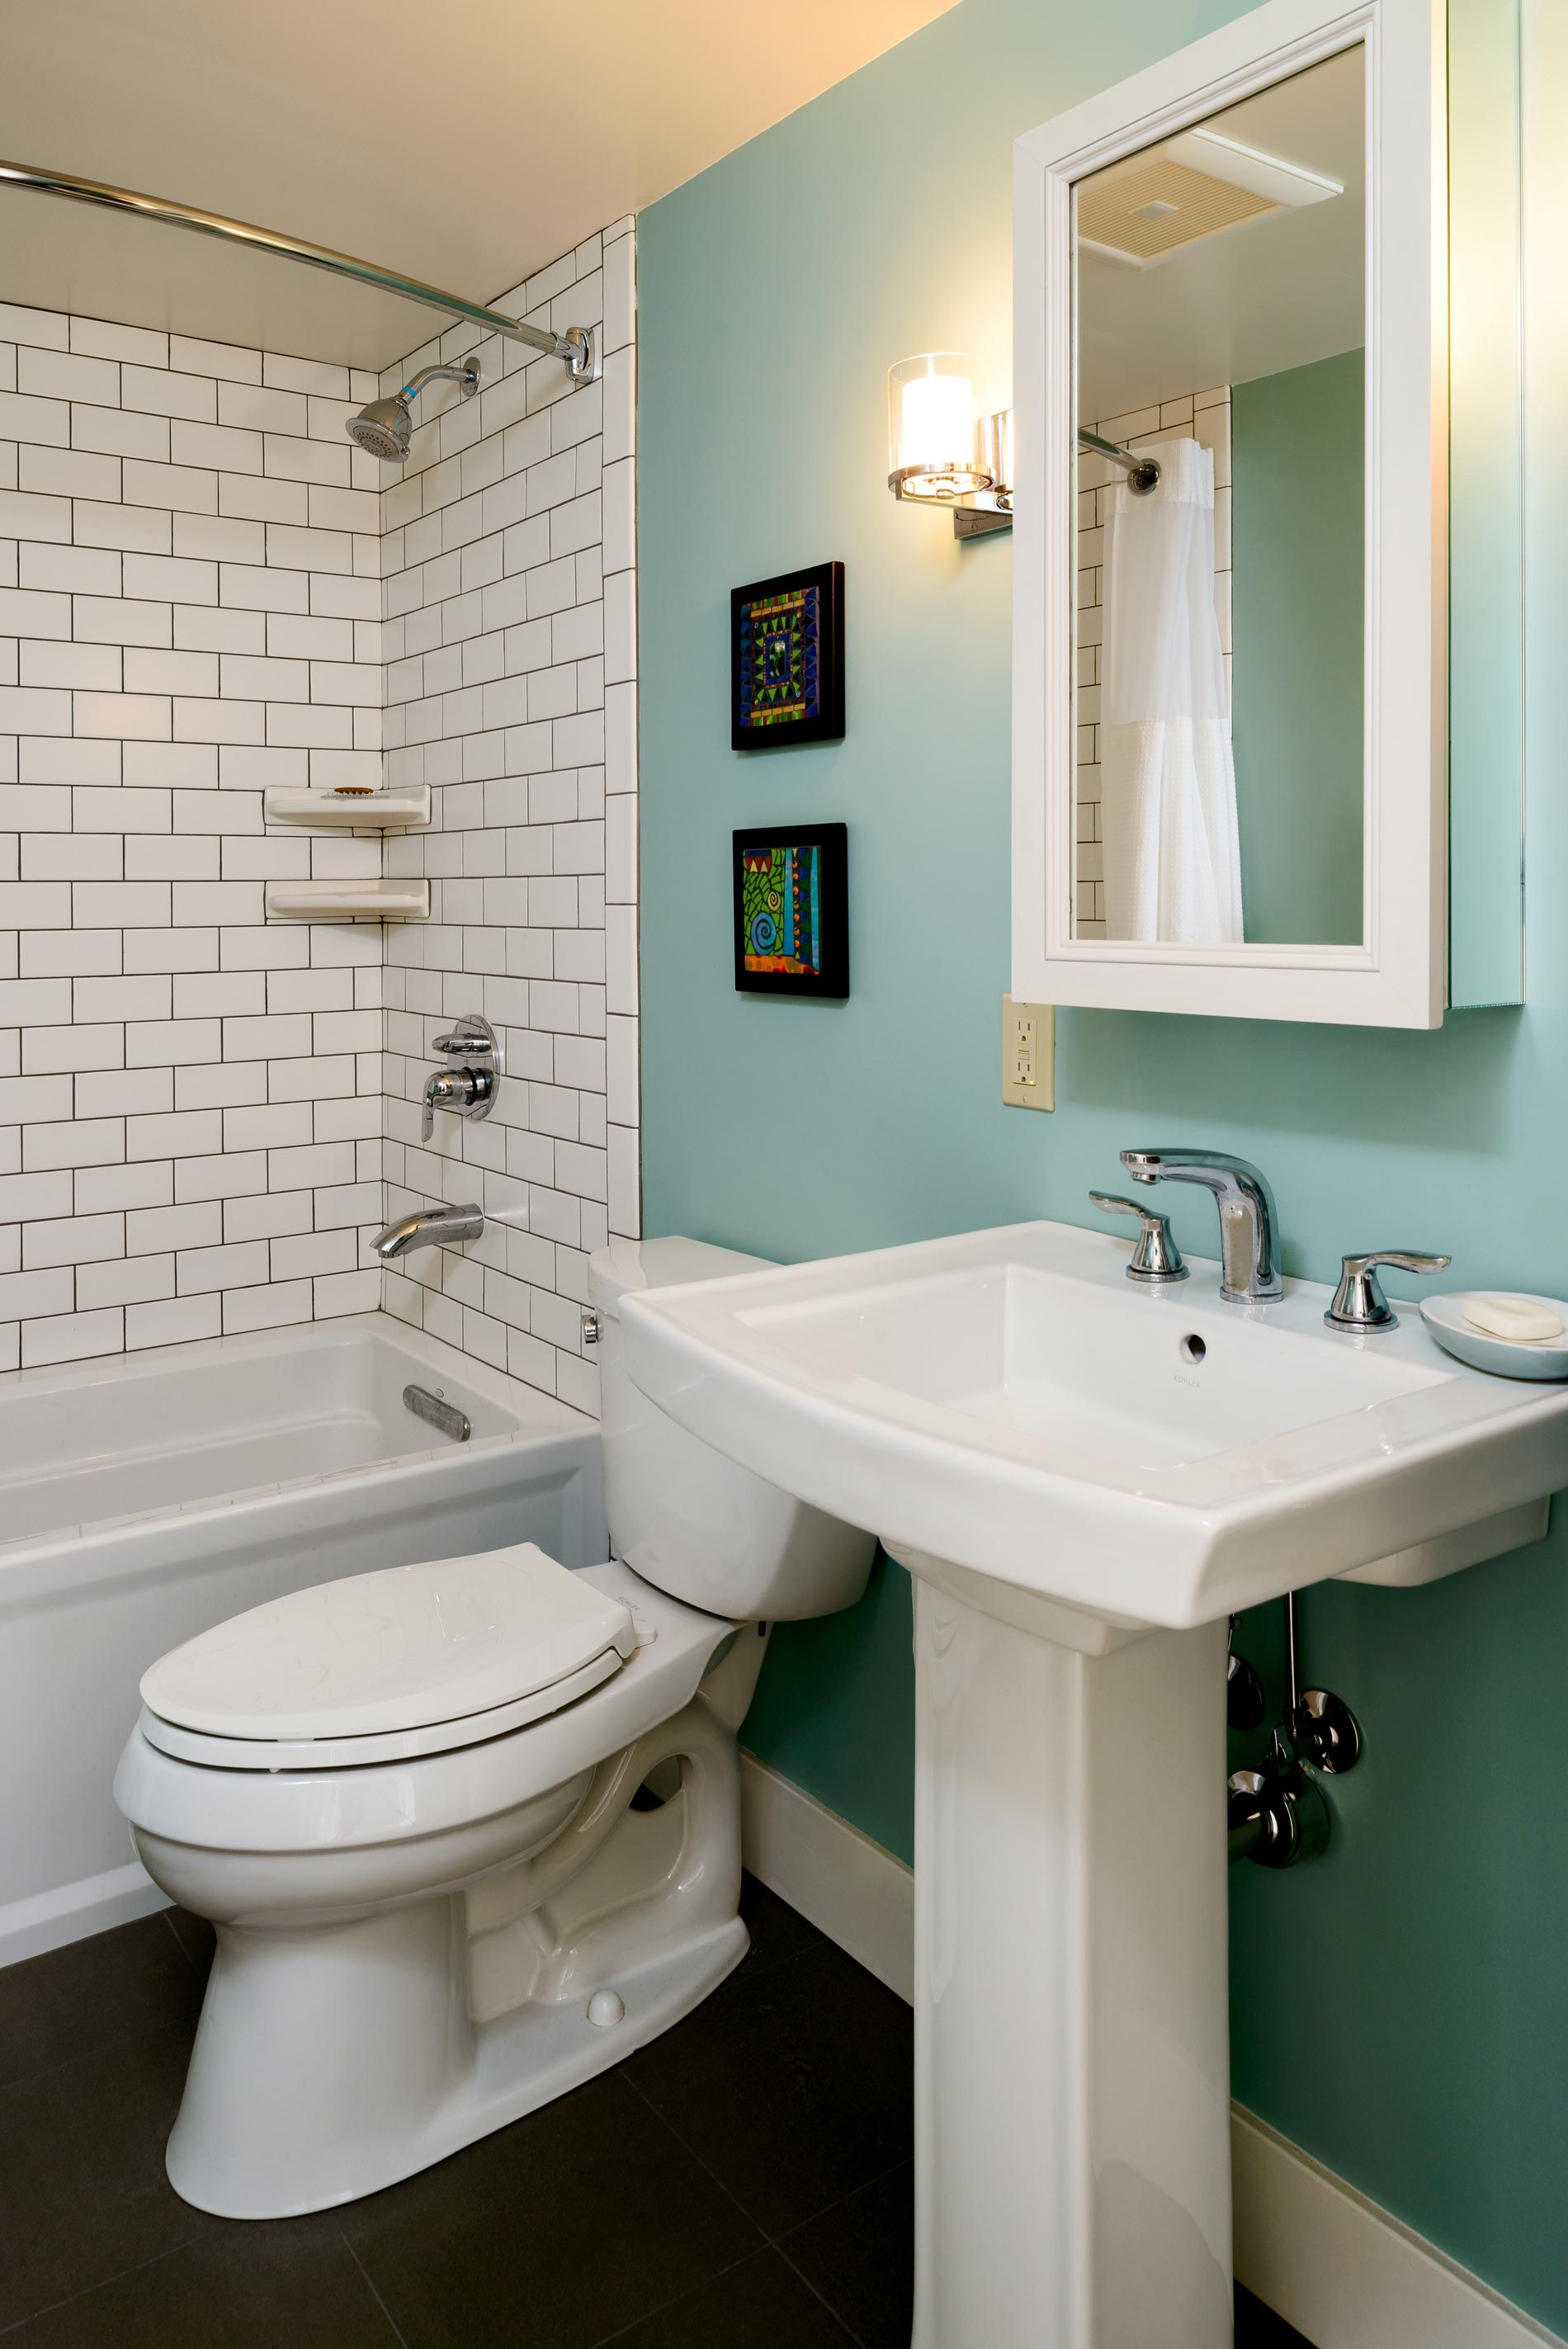 bathroom remodel seattle. Bathroom Remodel | Retro Modern Subway Tile Teal Accent Wall Seattle